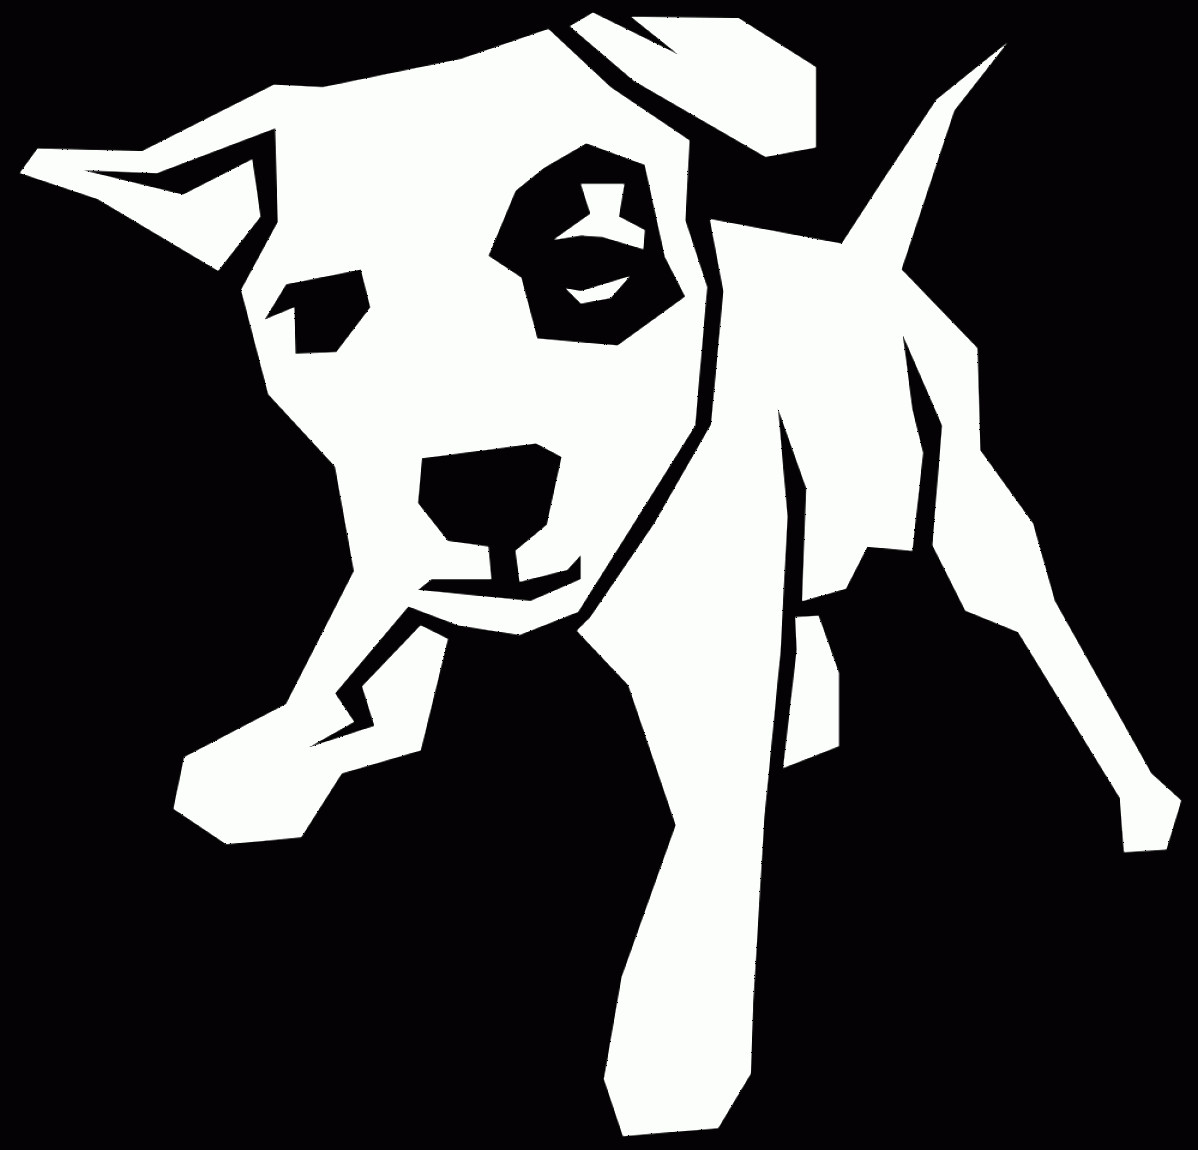 Dog Bone Vector Graphics: Black And White Picture Of A Dog